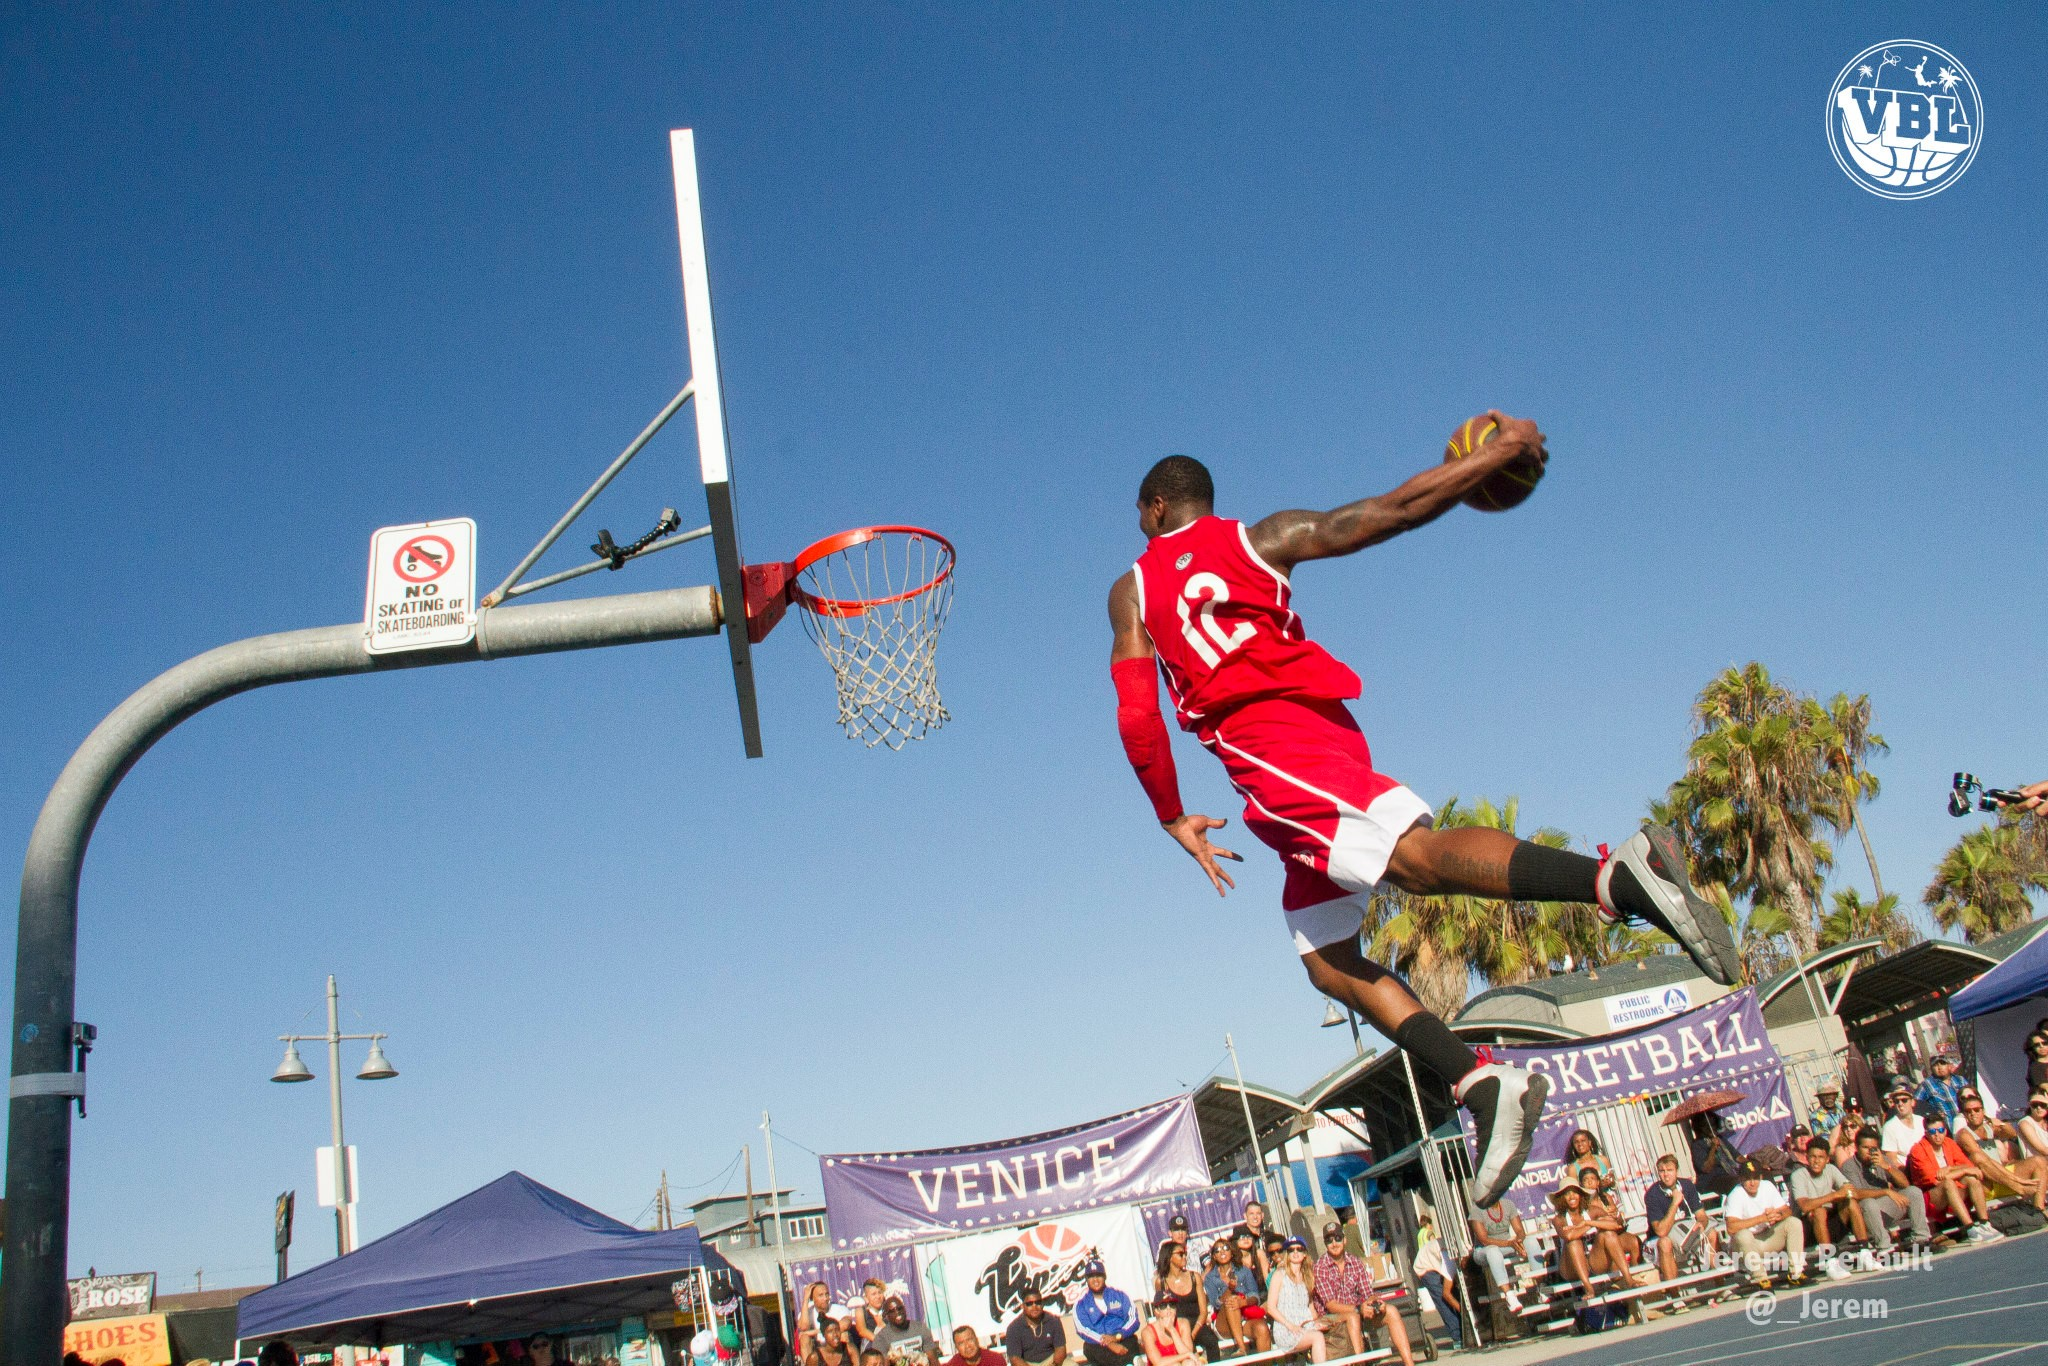 BrandBlack Future Legends Taking Flight at the Venice Beach League